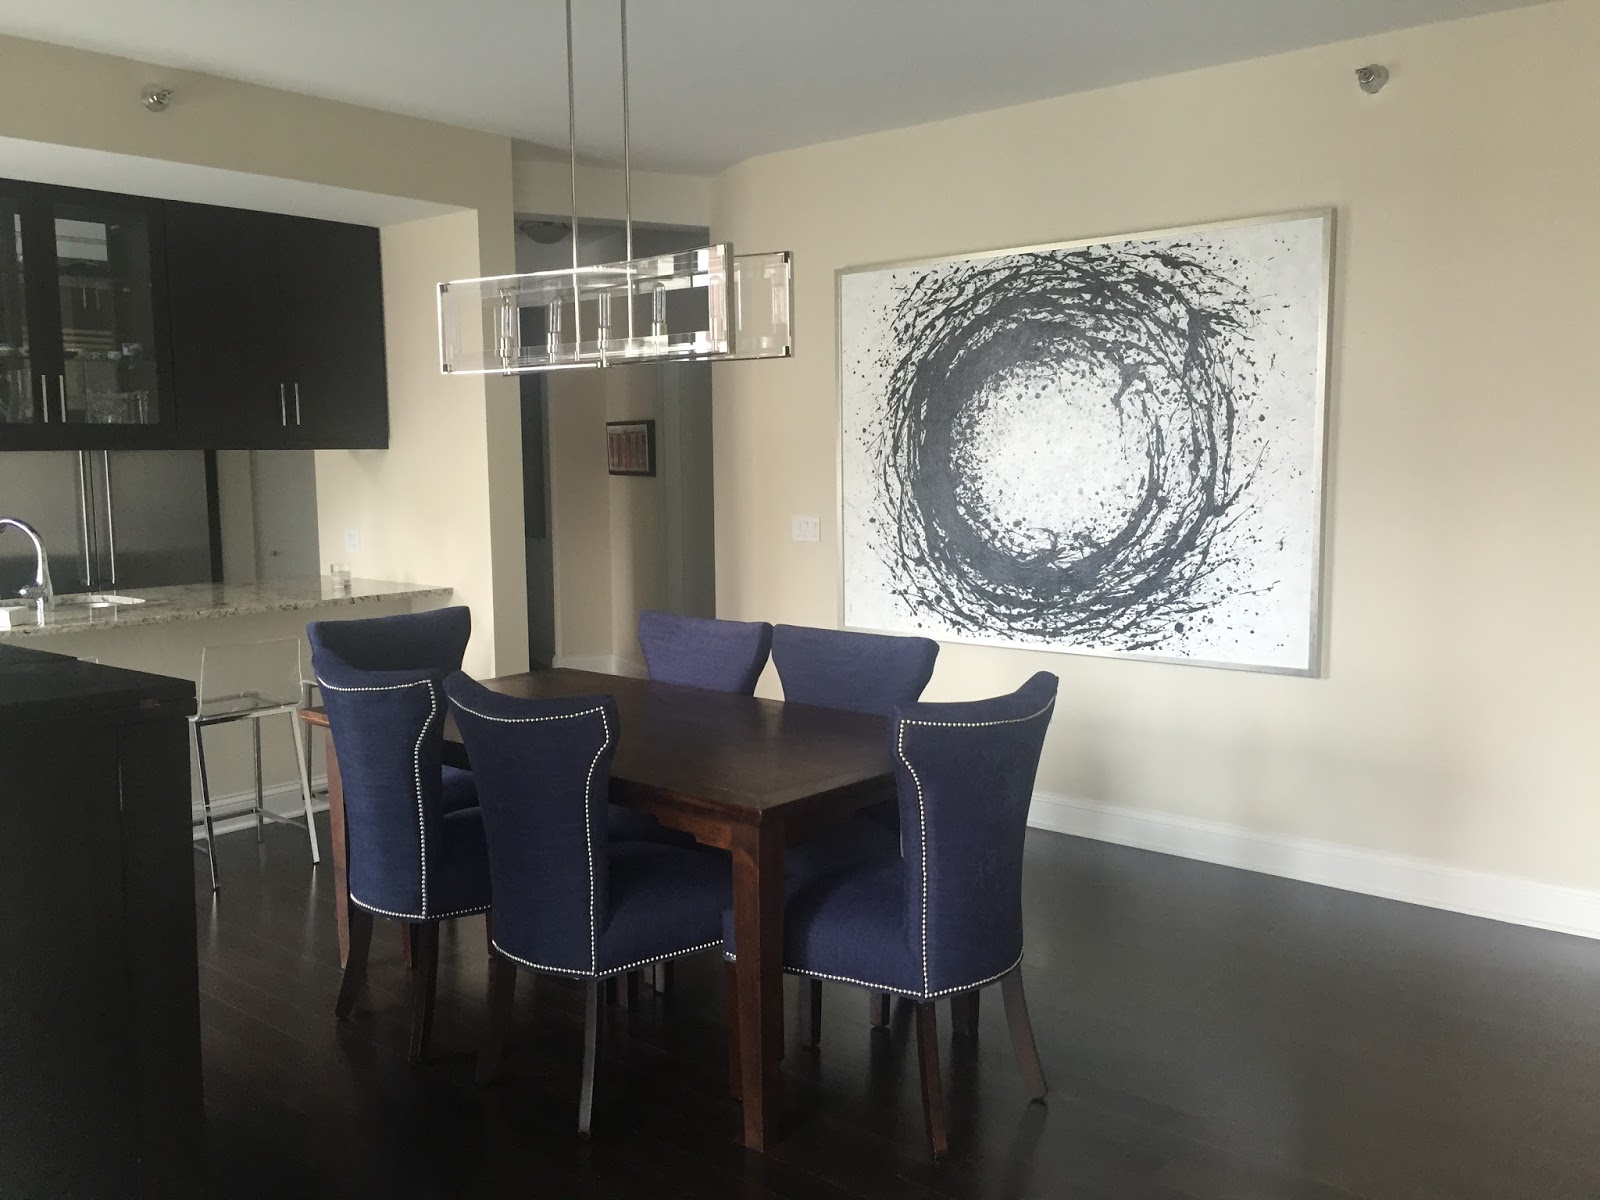 This Is The Dining Room As It Is Today After Updating Three Elements.